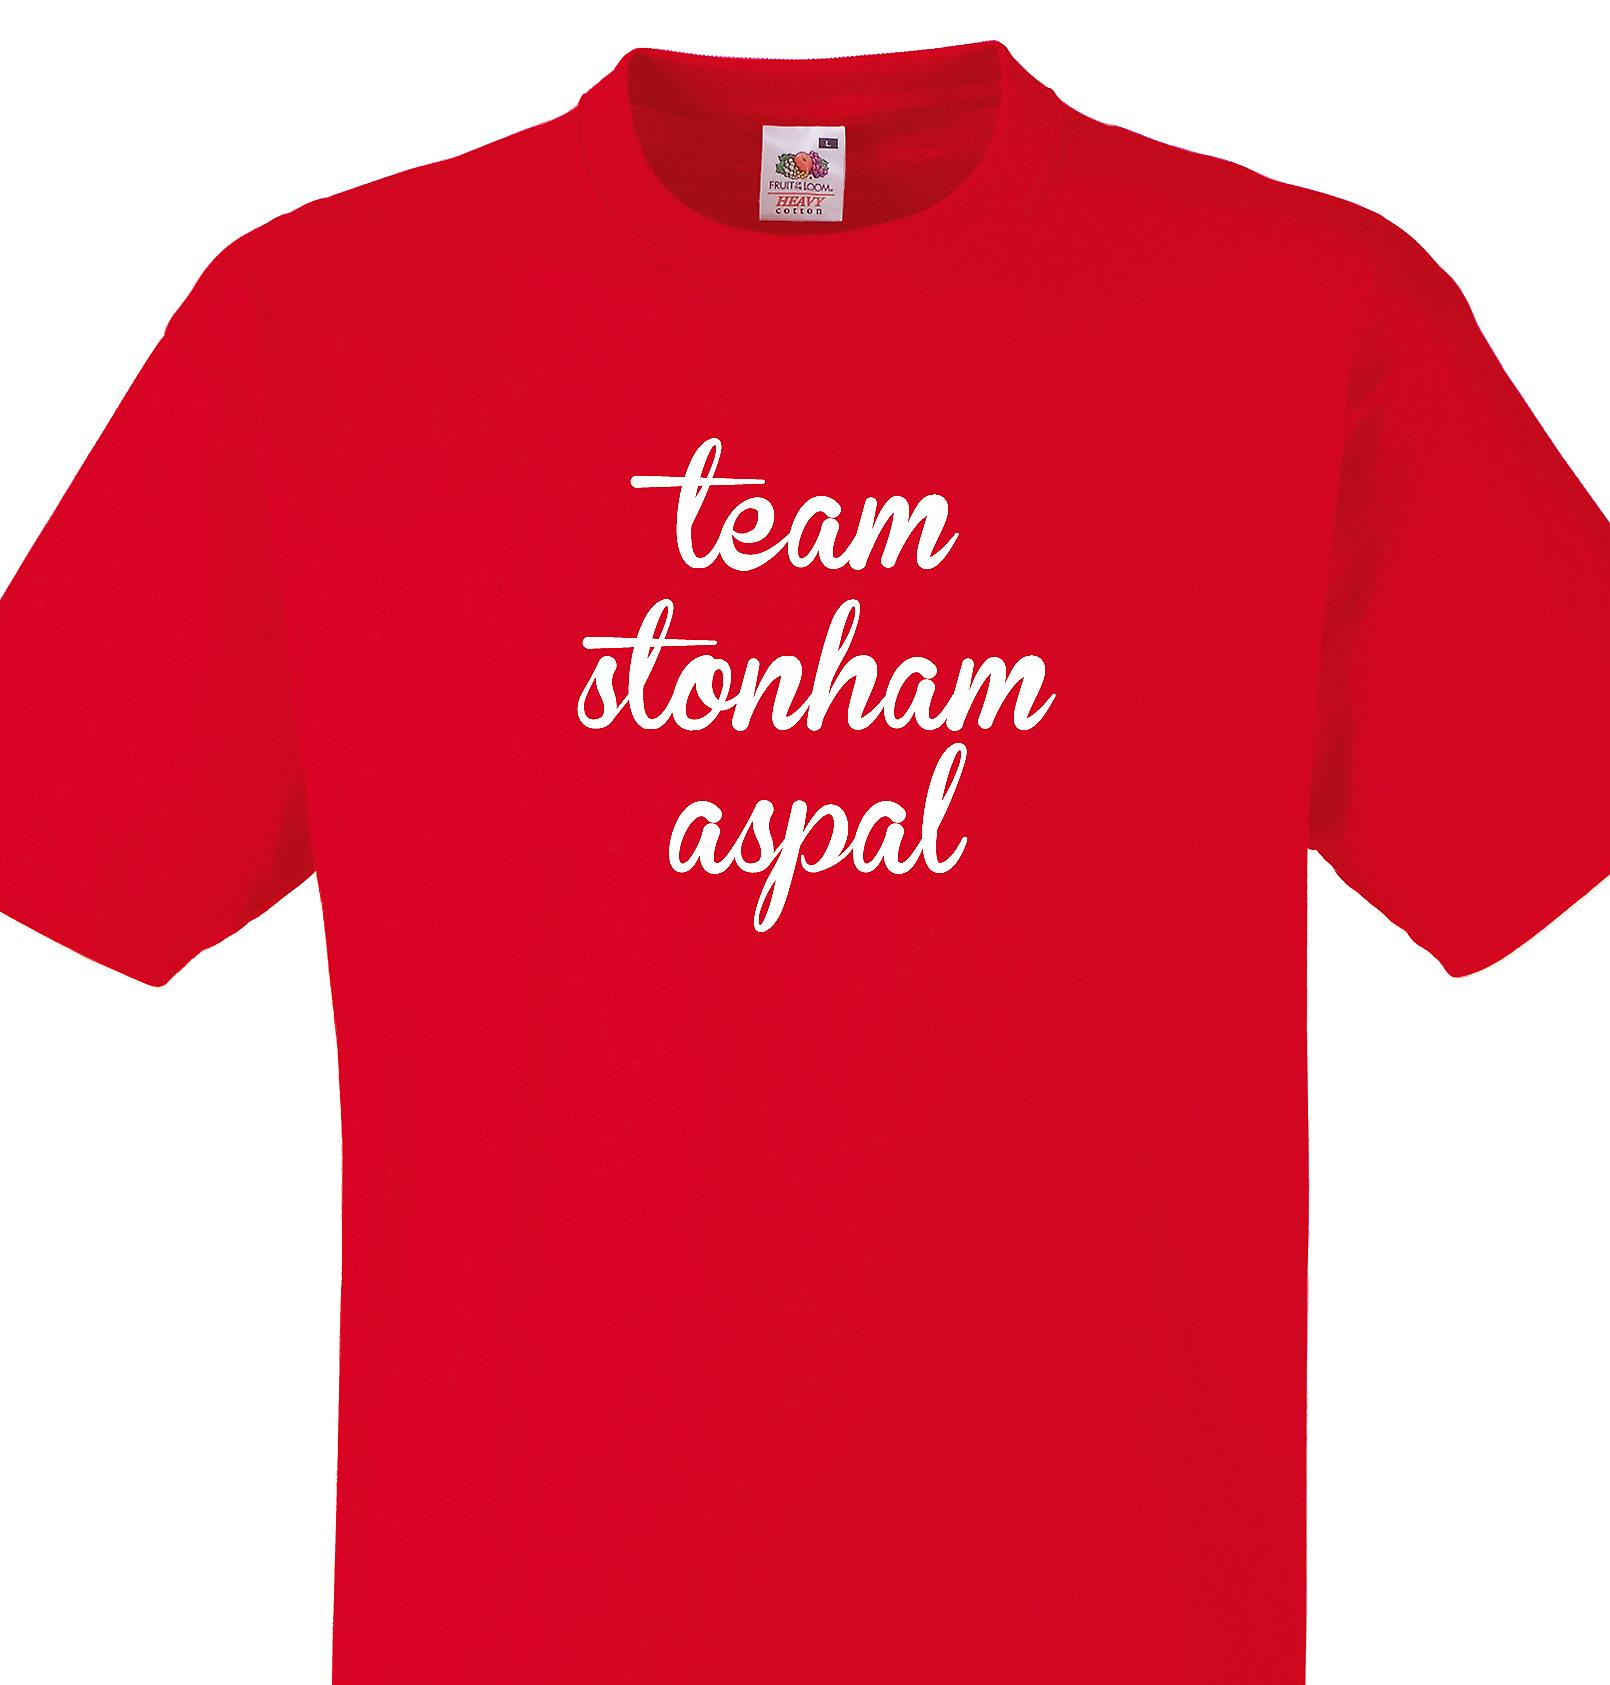 Team Stonham aspal Red T shirt